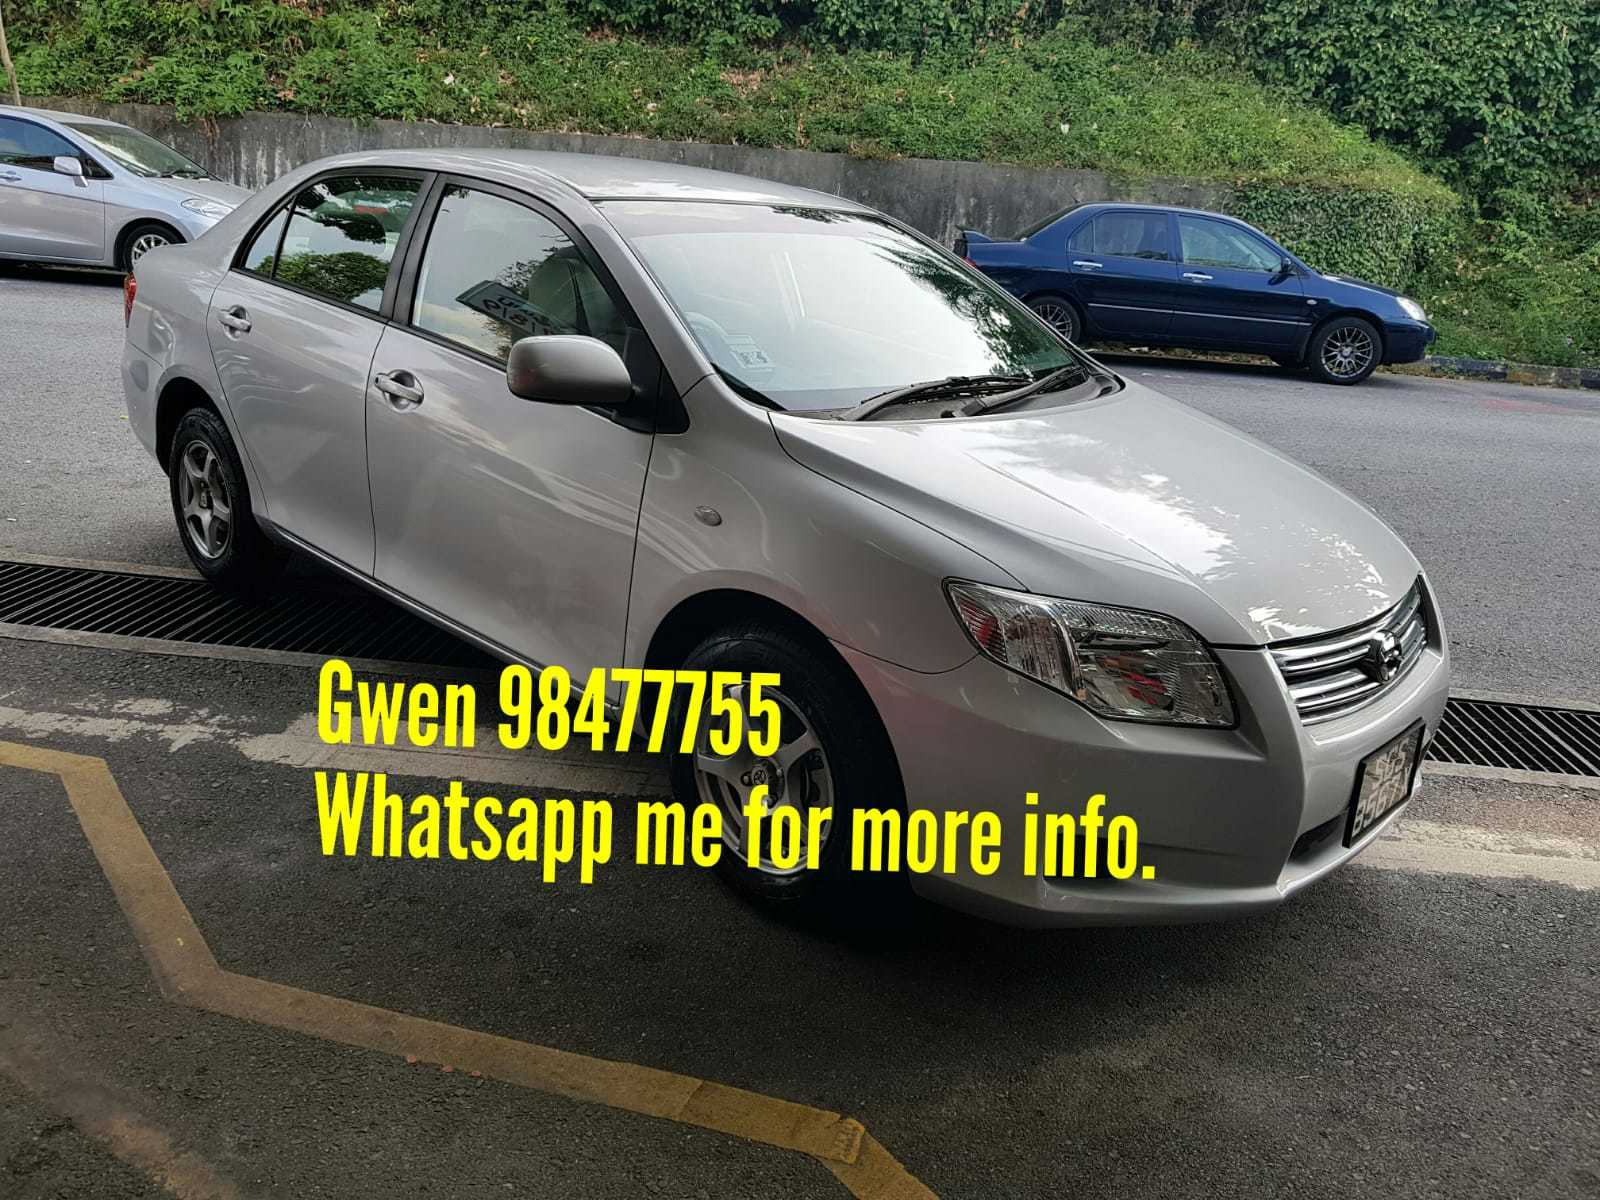 Used toyota Corolla for Sale New Used toyota Corolla Axio Car In Singapore $24 800 Search Used